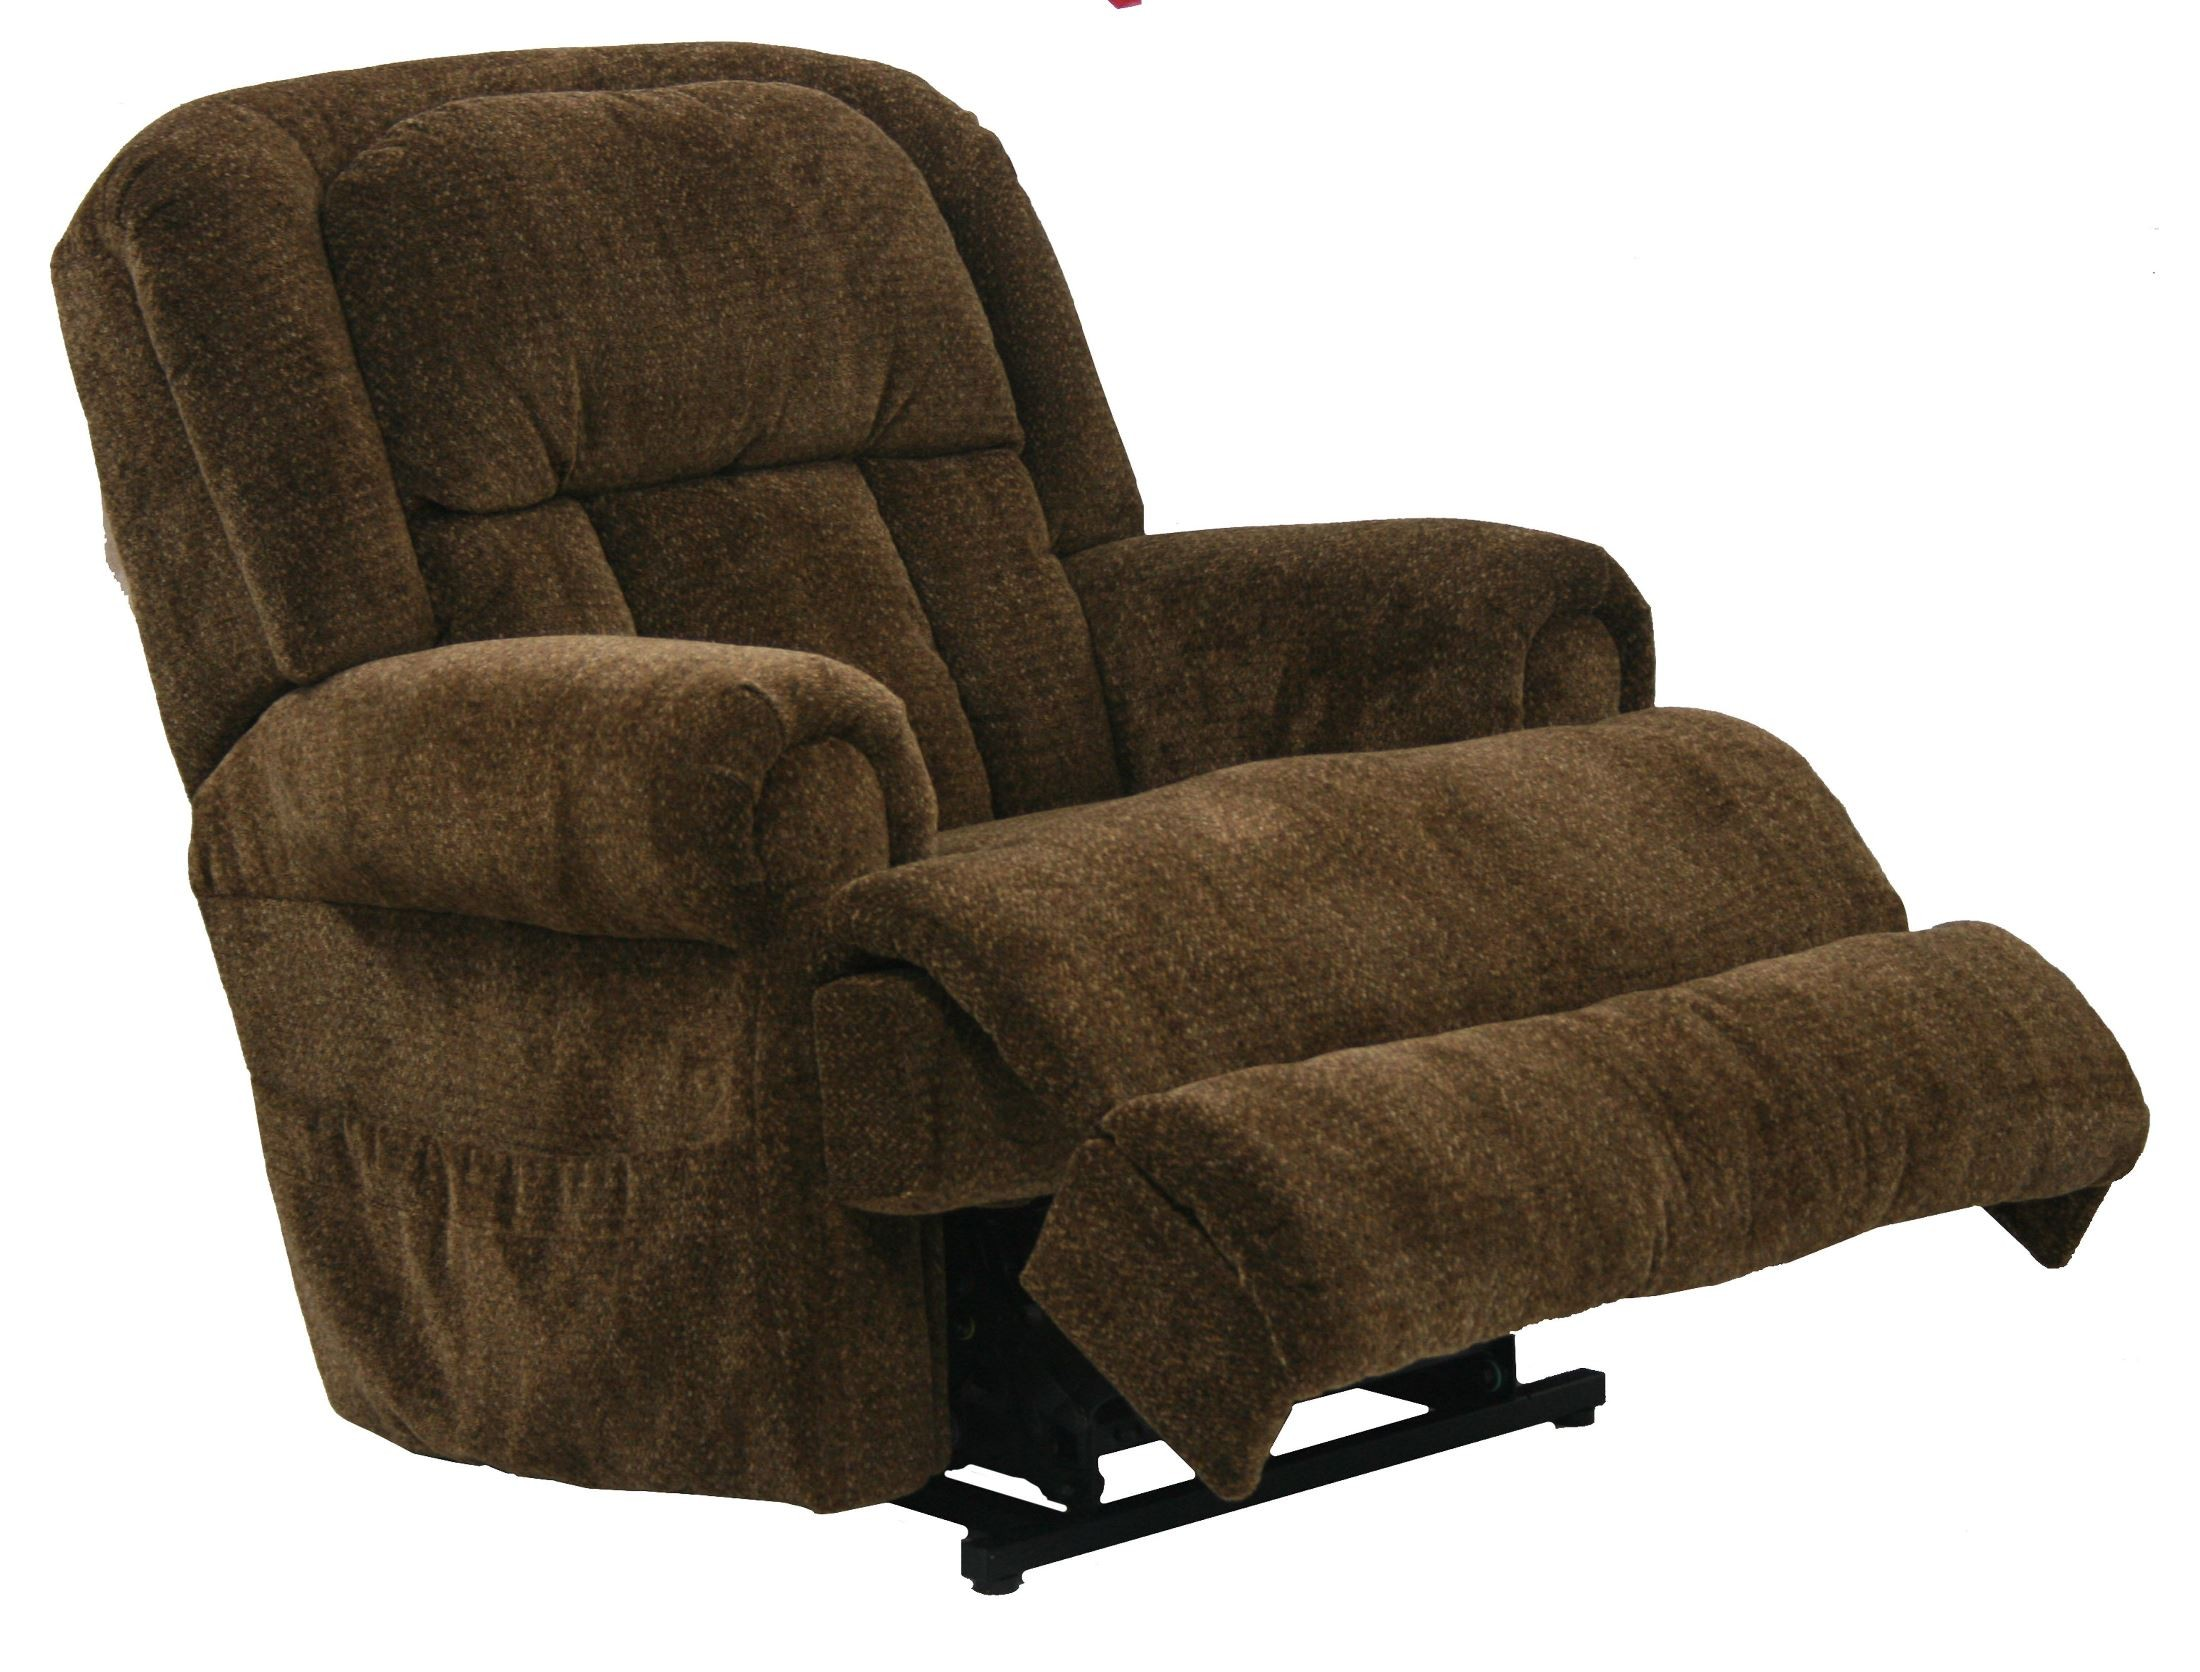 Burns Earth Power Lift Recliner From Catnapper 4847176329